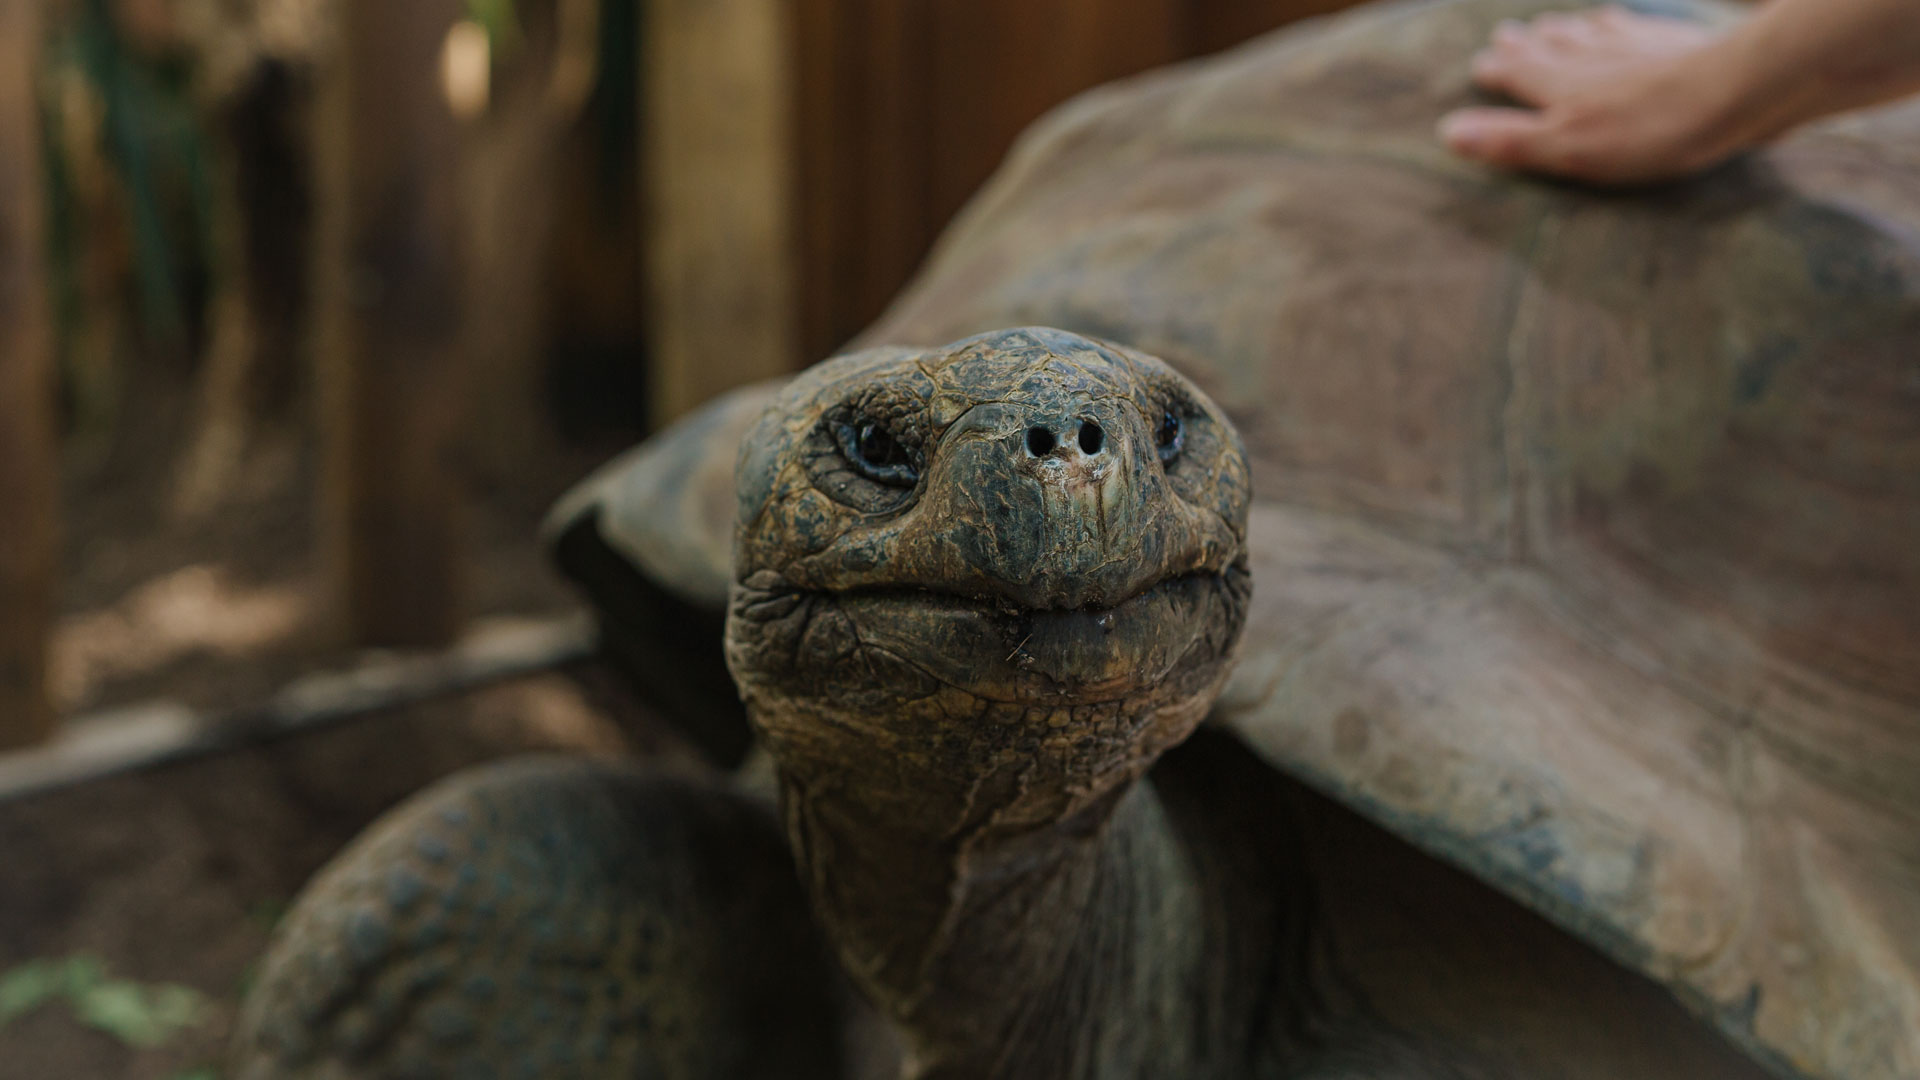 https://rfacdn.nz/zoo/assets/media/galapagos-tortoise-hatchlings-gallery-4.jpg